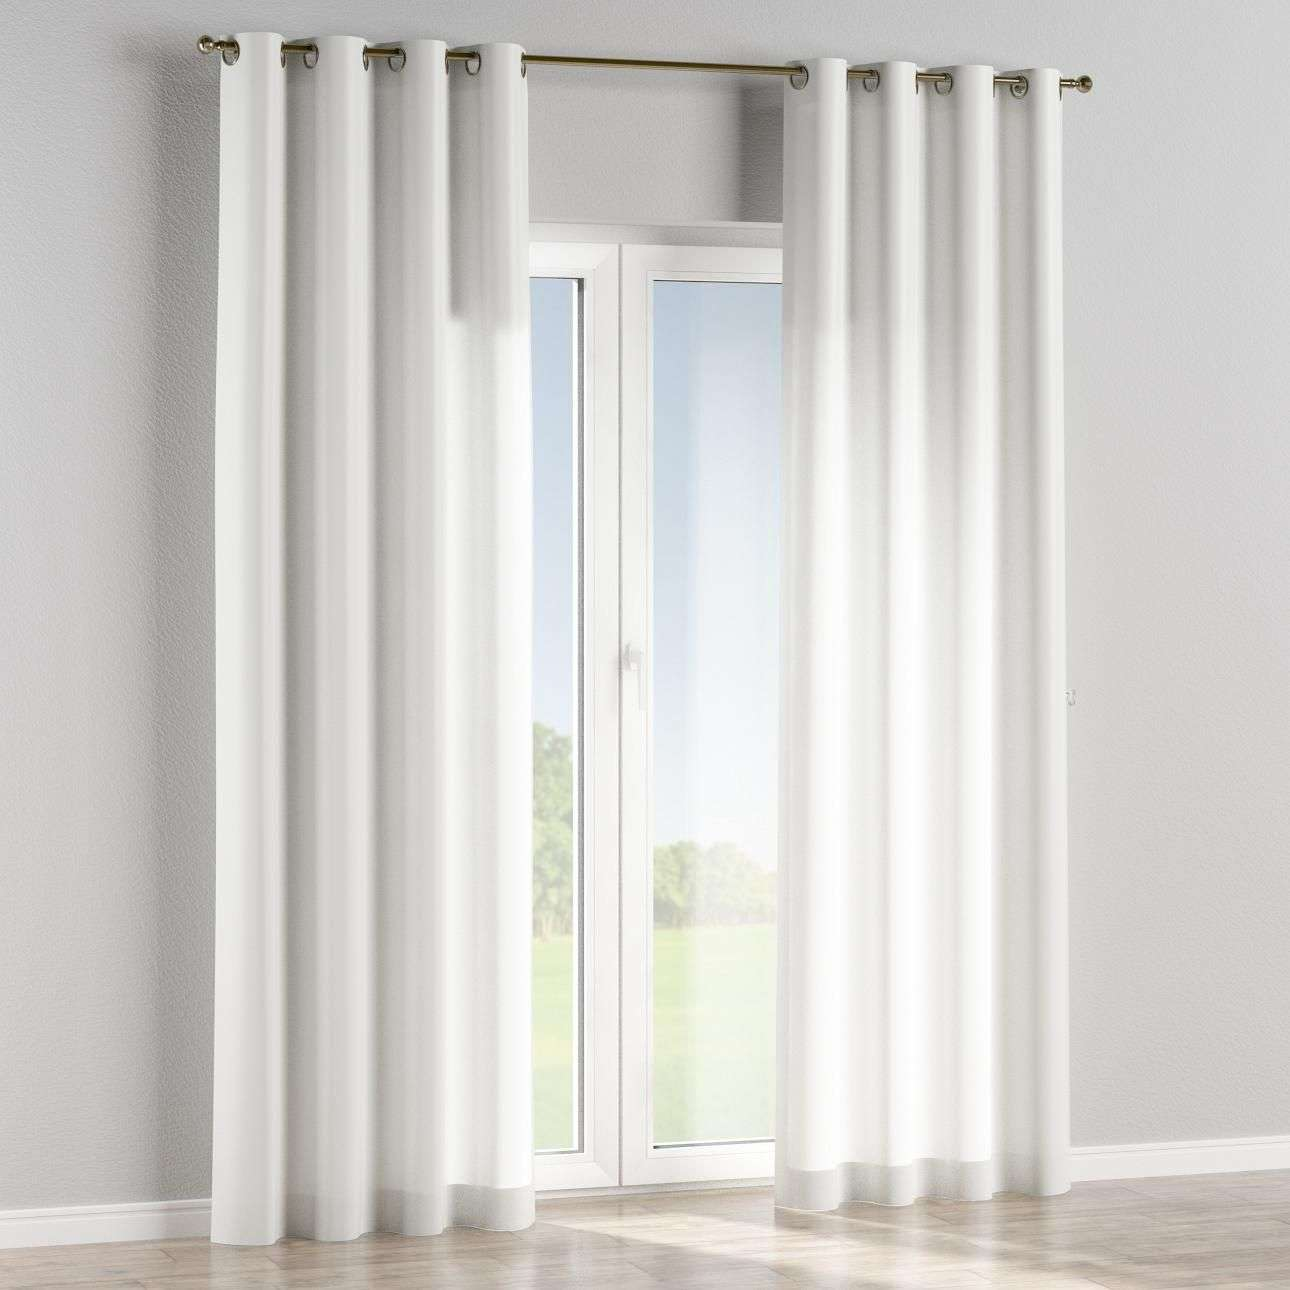 Eyelet lined curtains in collection Rustica, fabric: 138-21